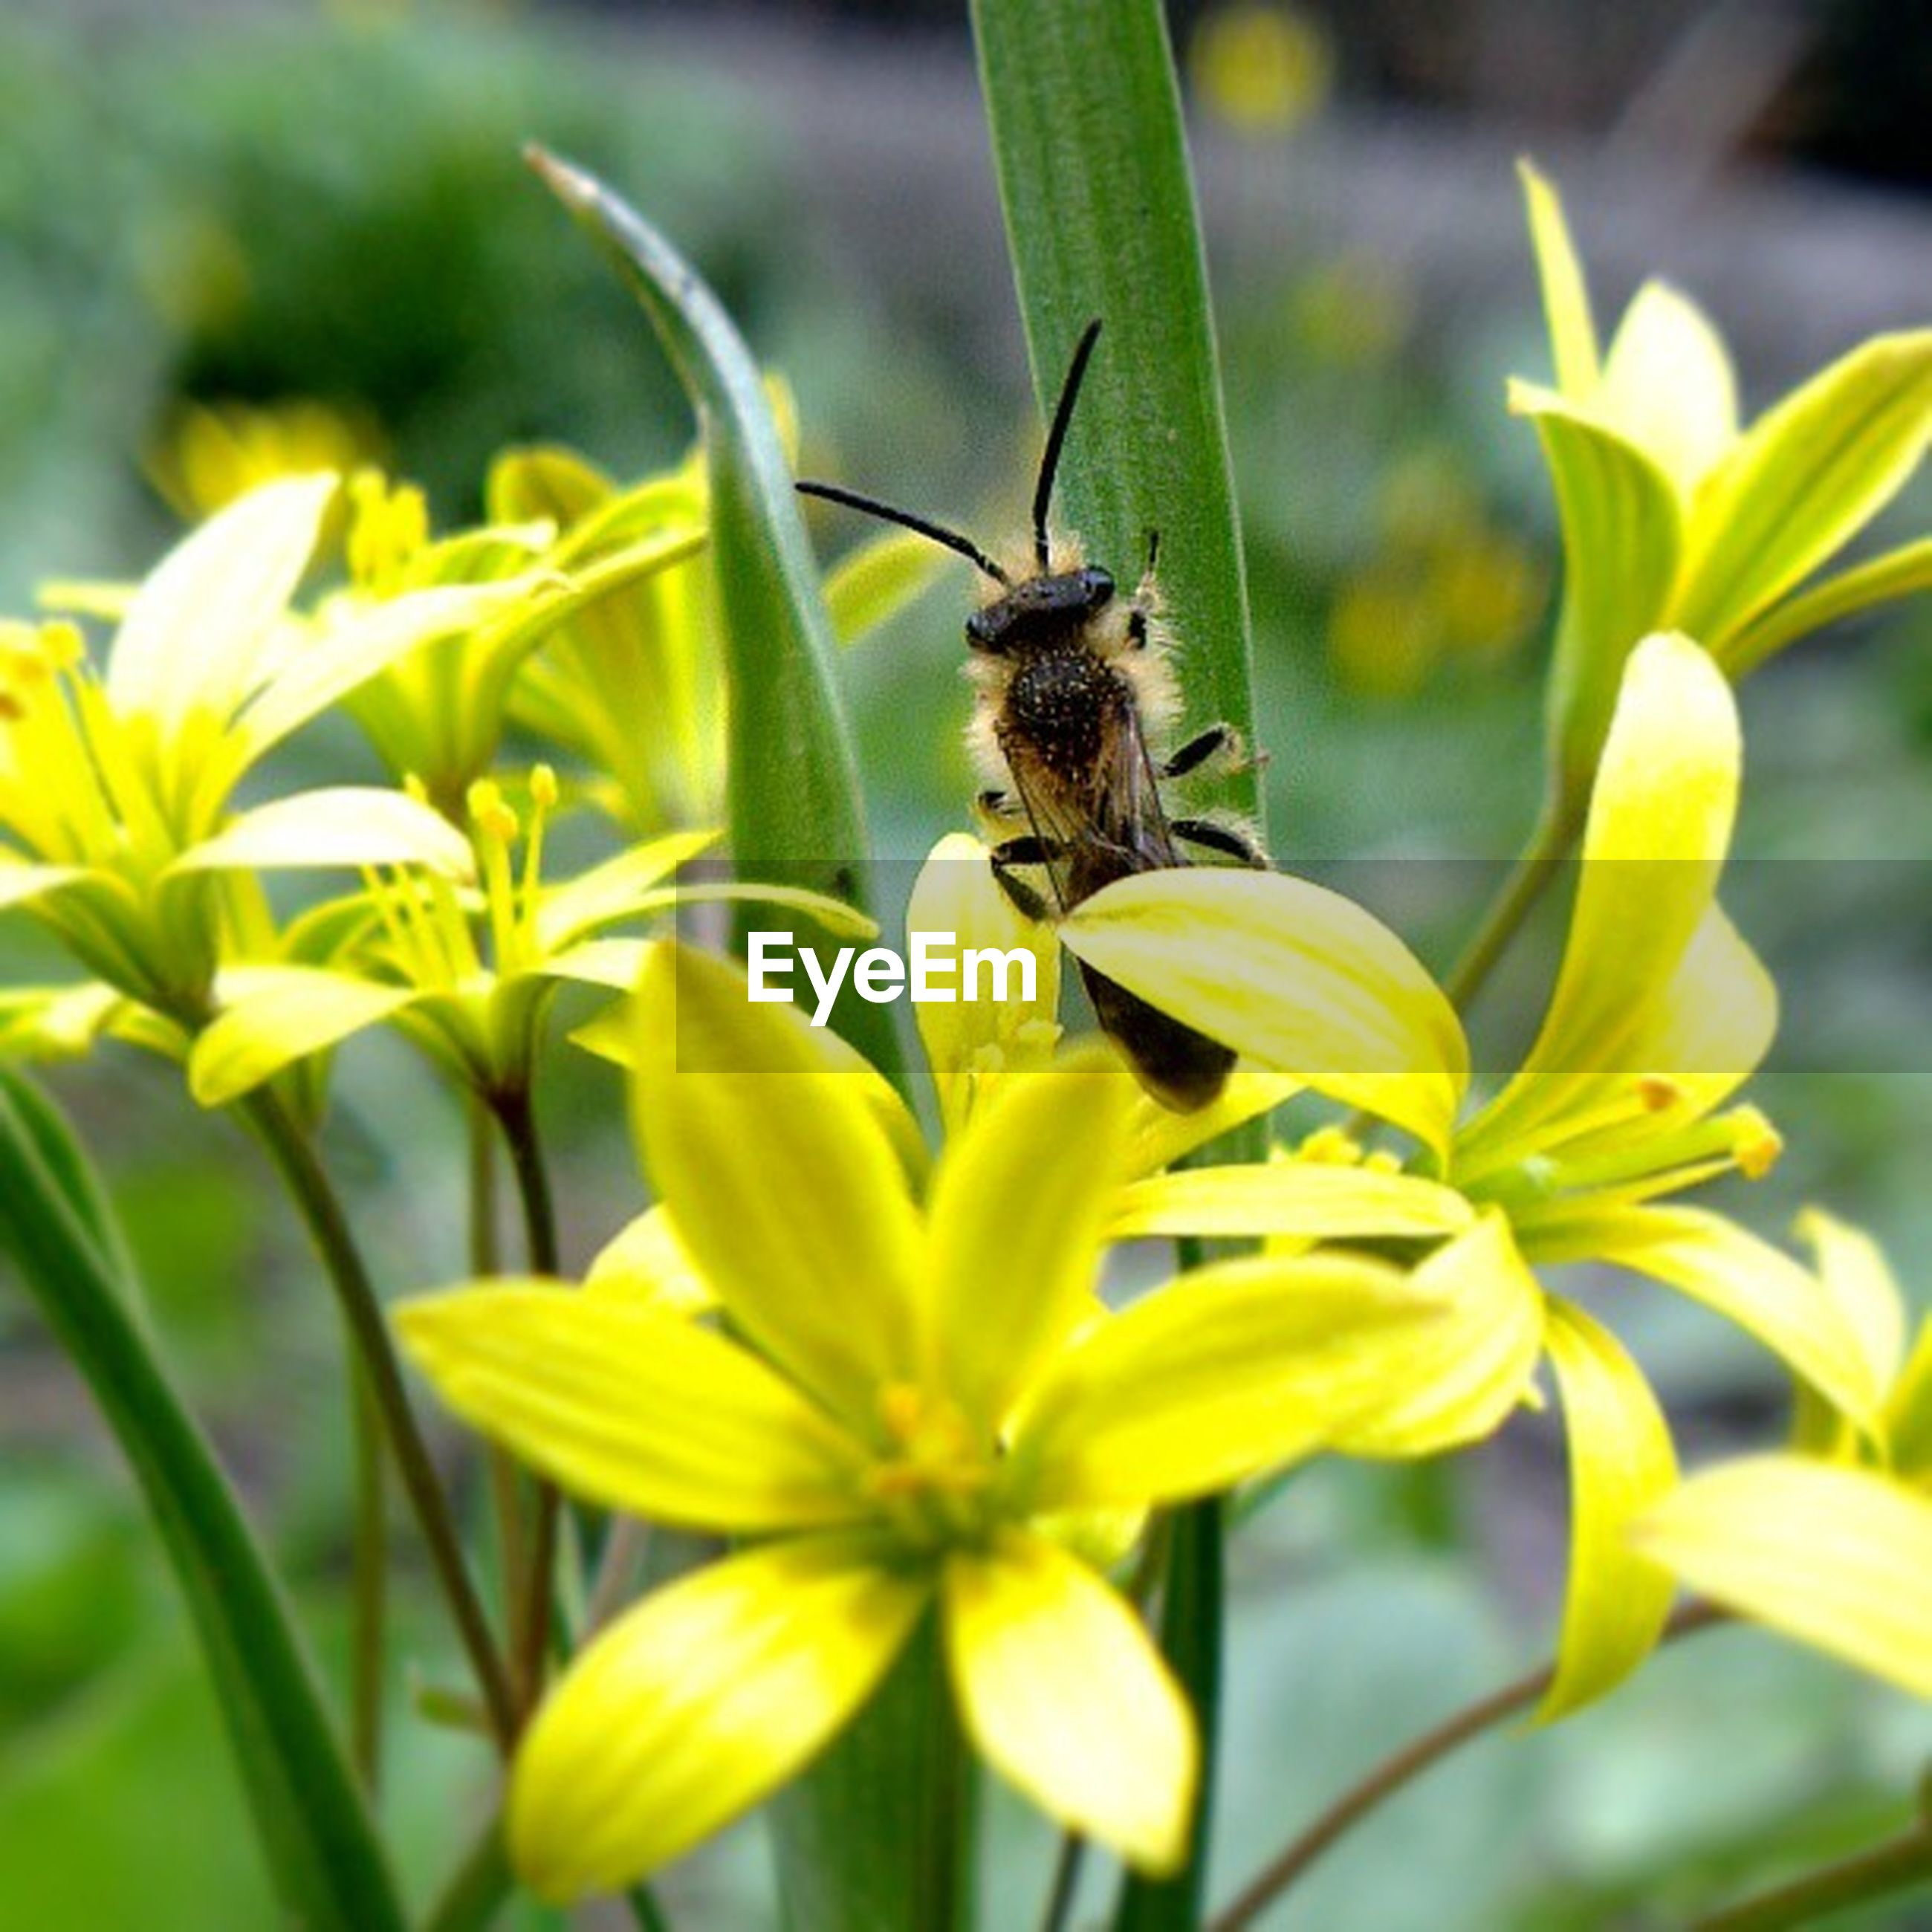 animal themes, flower, one animal, animals in the wild, wildlife, insect, freshness, yellow, petal, pollination, bee, focus on foreground, fragility, growth, beauty in nature, nature, flower head, close-up, symbiotic relationship, plant